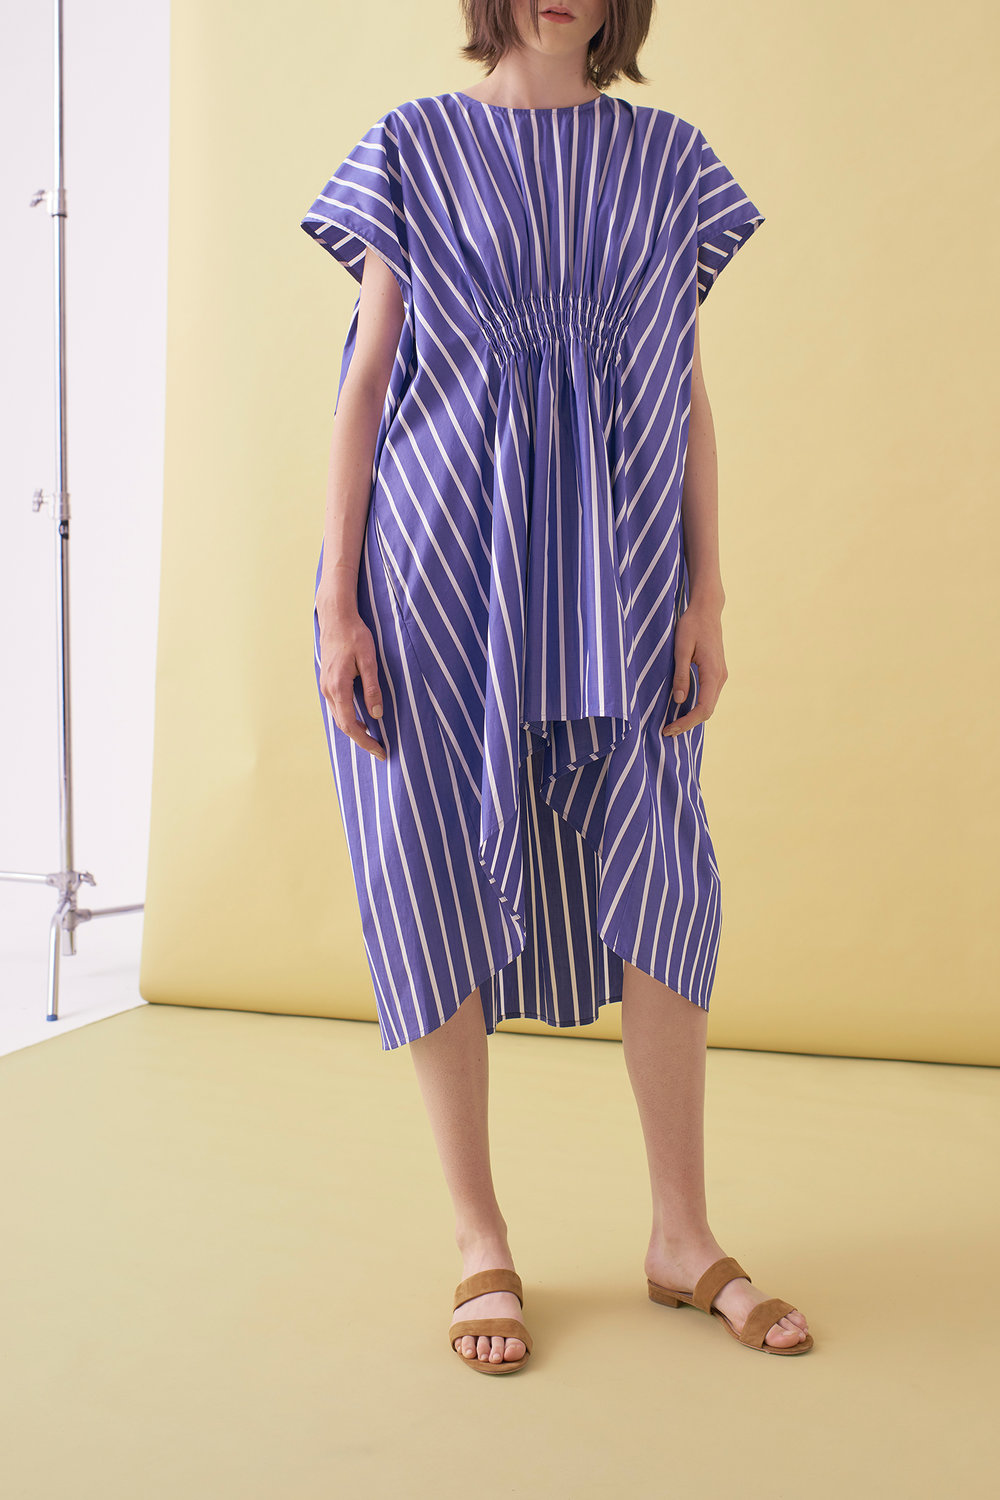 Sarah_Swann_SS17_01_Striped_Shirring_Dress_CeruleanBlue_F.jpg